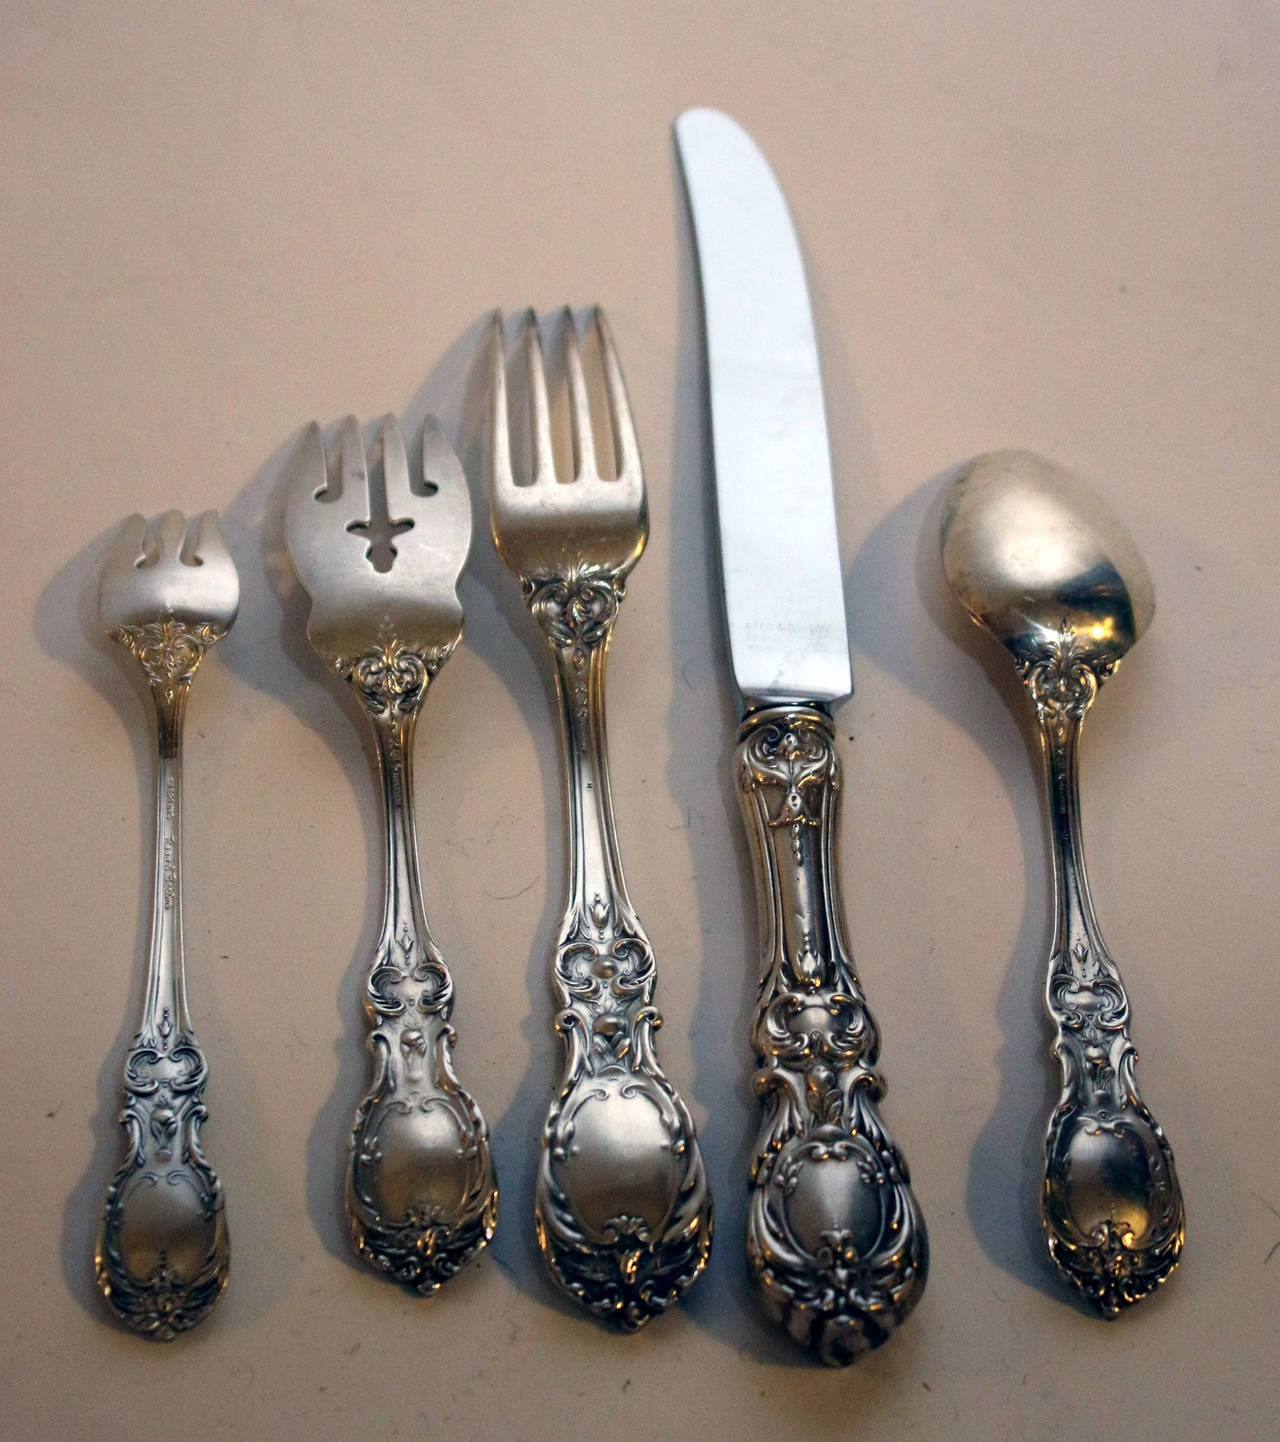 Baroque Francis 1st Sterling Silver Reed & Barton Flatware Service 52 Piece Set  For Sale